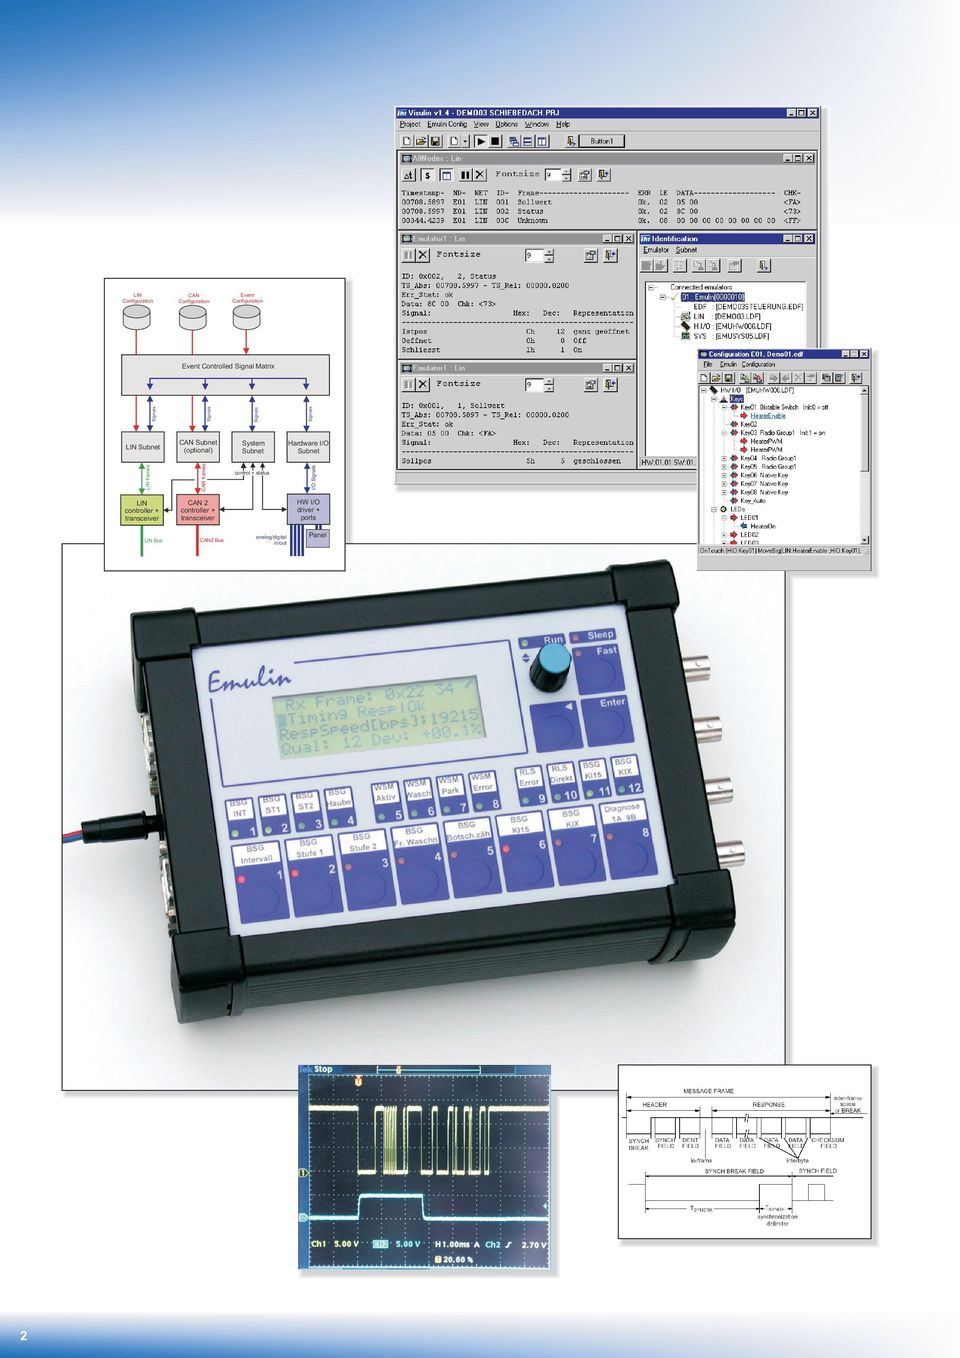 Subnet LIN frames CAN frames control + status I/O Signals LIN controller + transceiver CAN